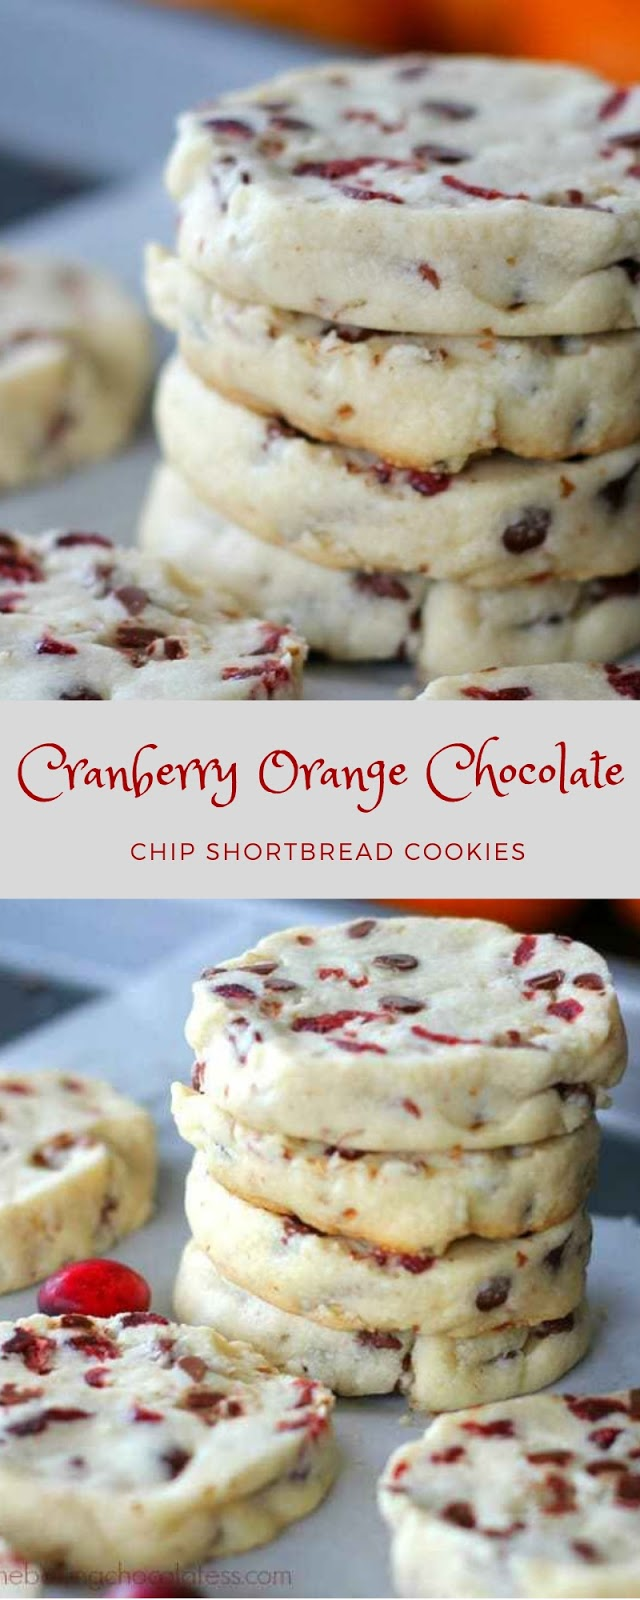 Cranberry Orange Chocolate Chip Shortbread Cookies